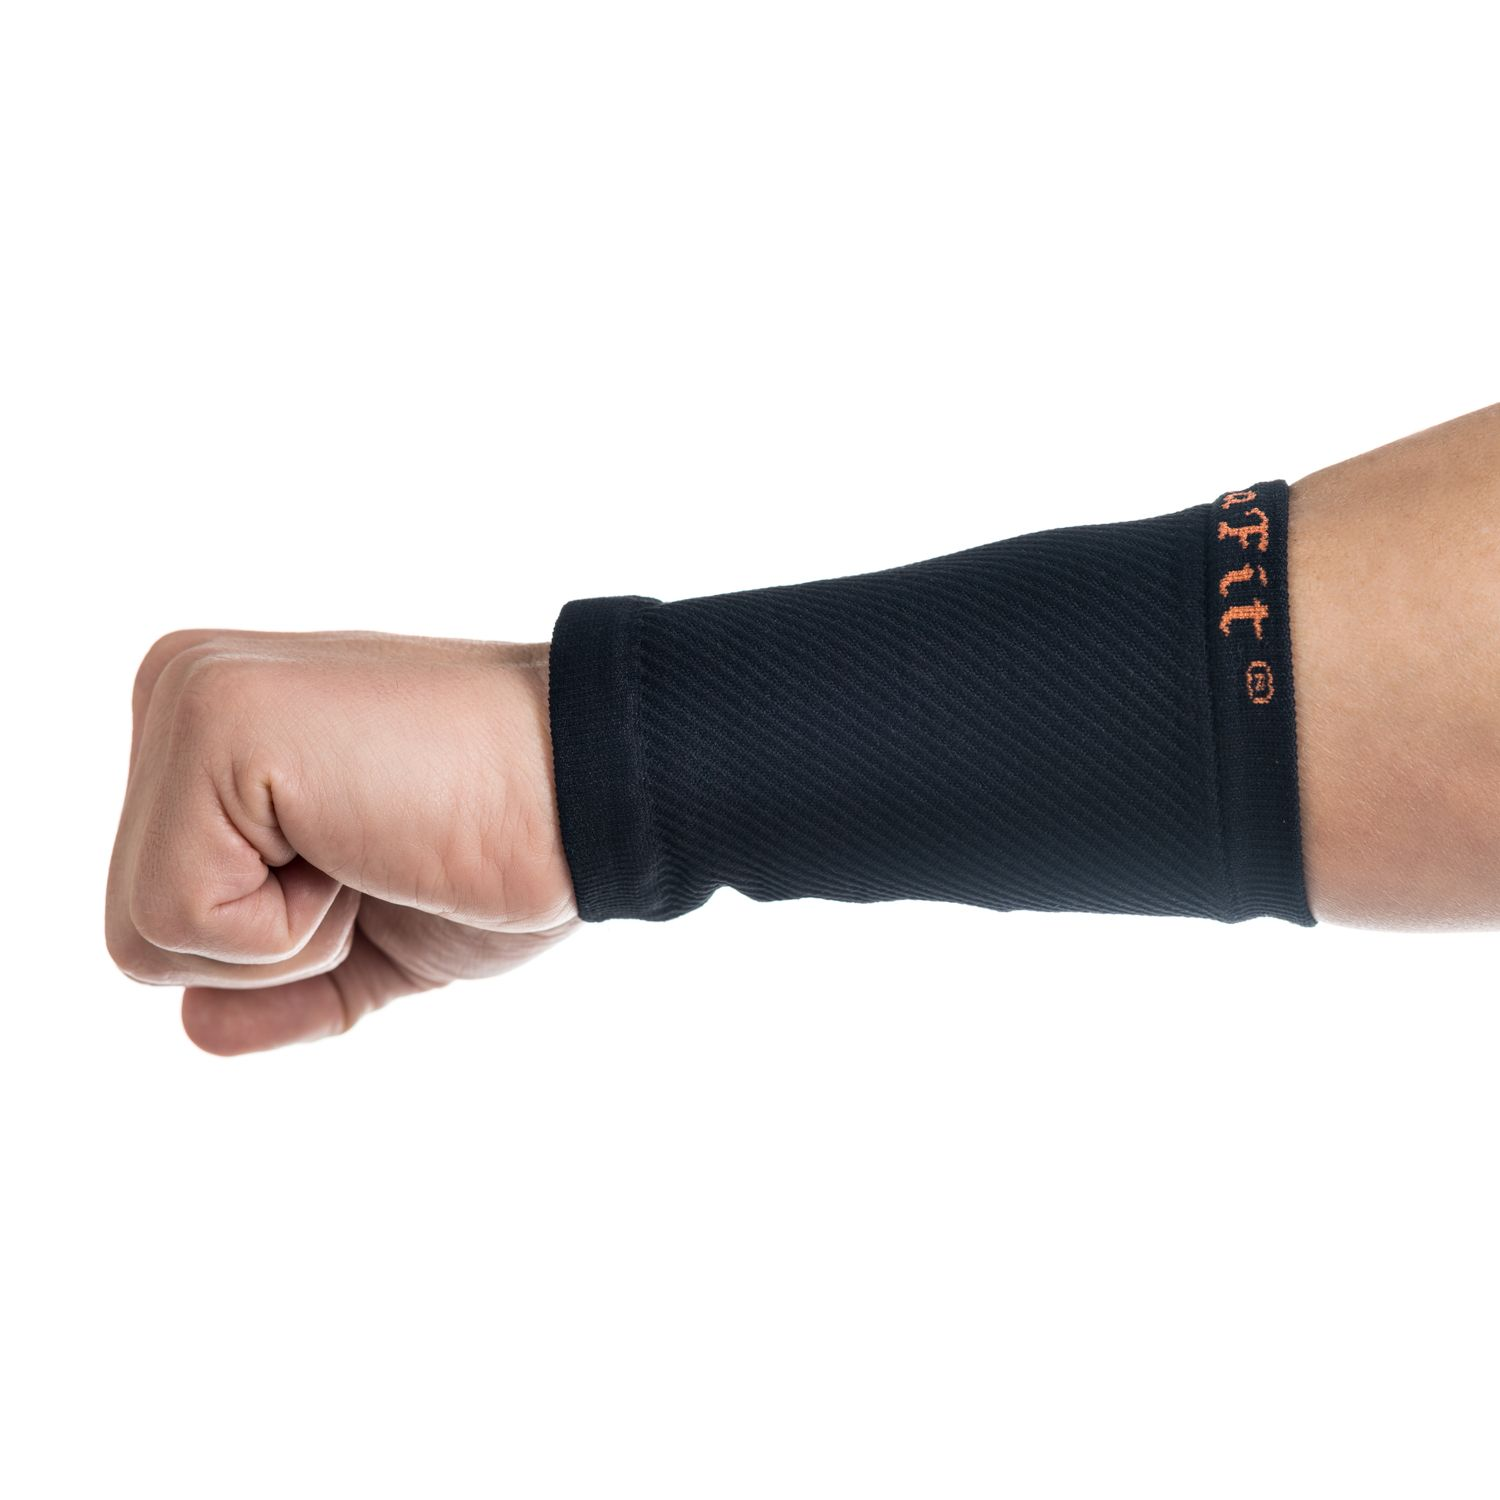 Infrared Wrist Support | Sports Body Supports | Repetitive